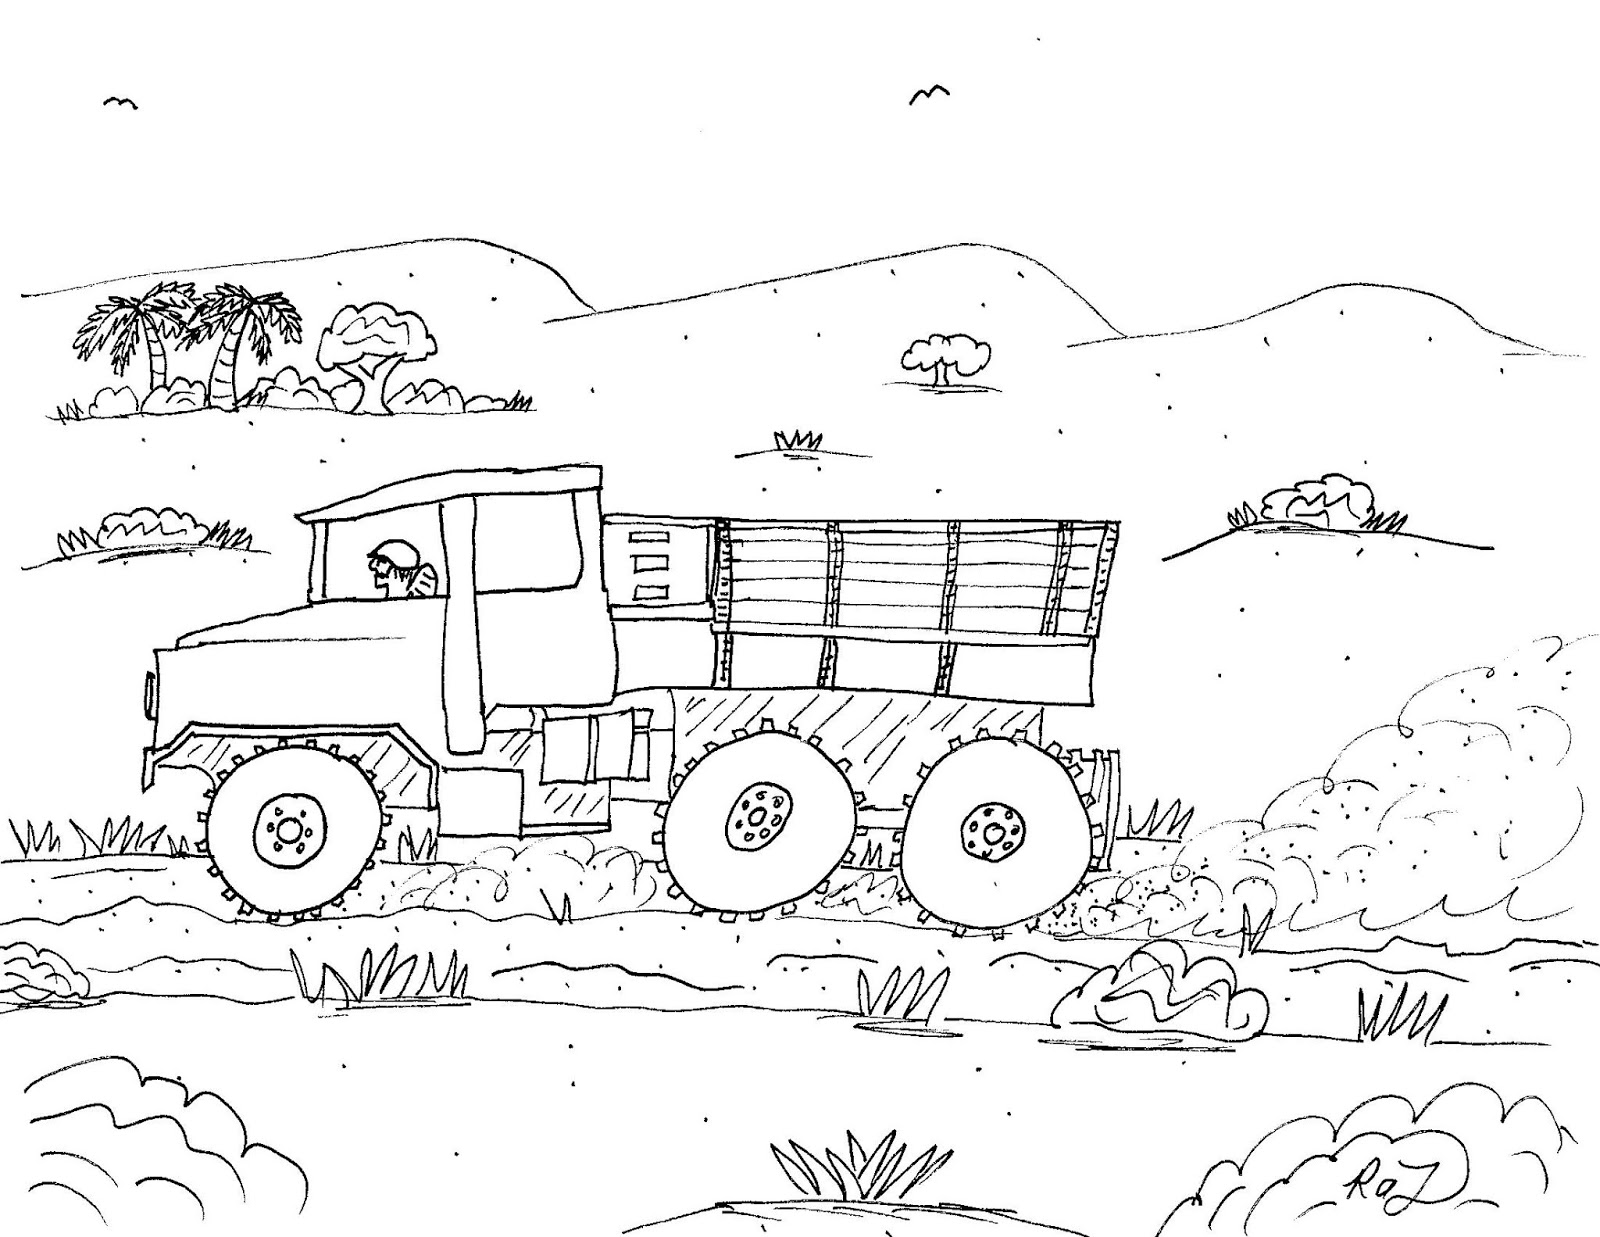 Robin S Great Coloring Pages Memorial Day